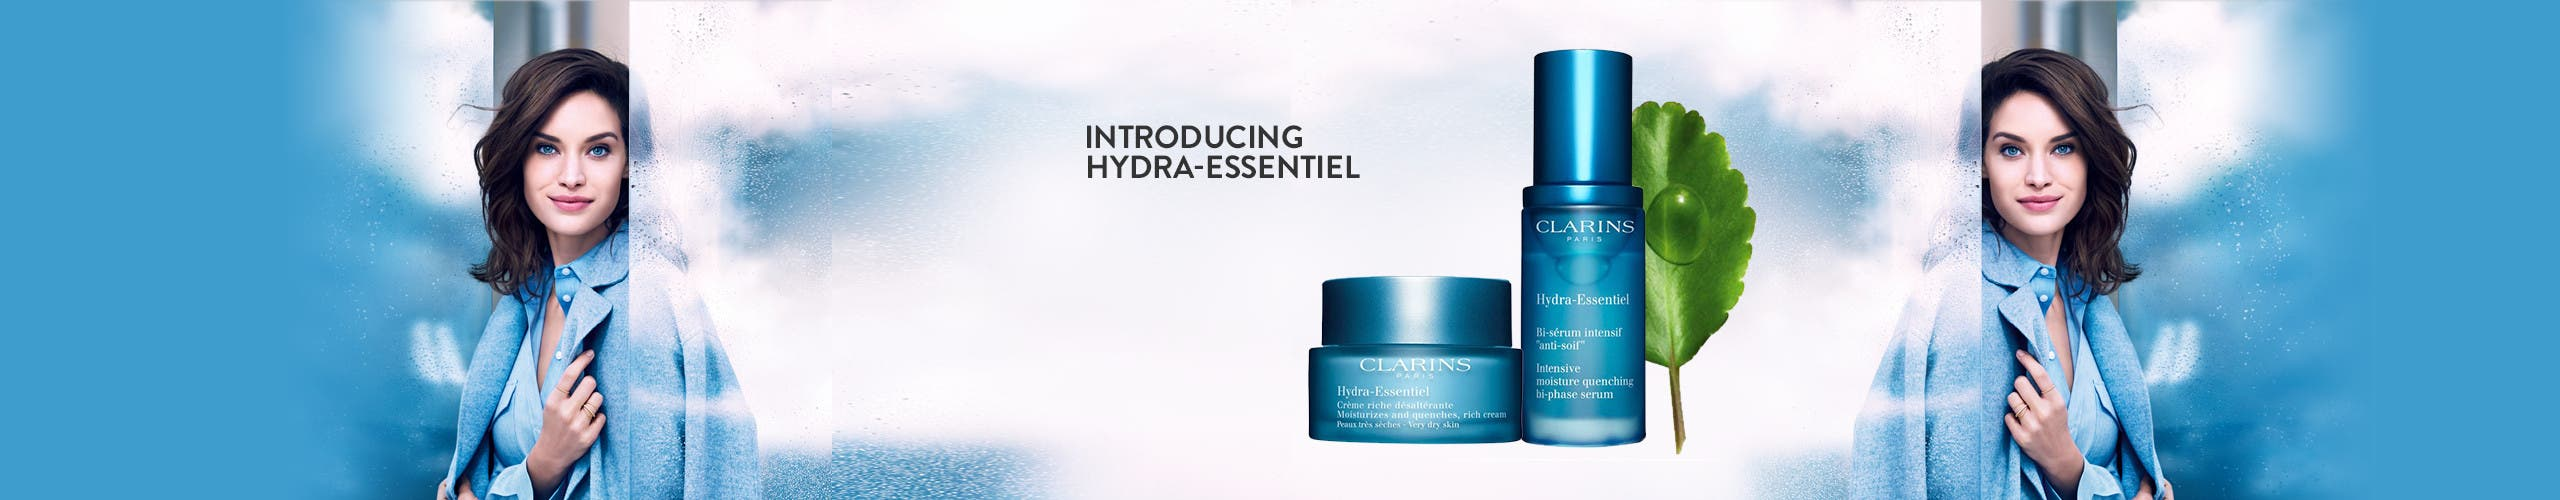 Introducing Hydra-Essentiel.